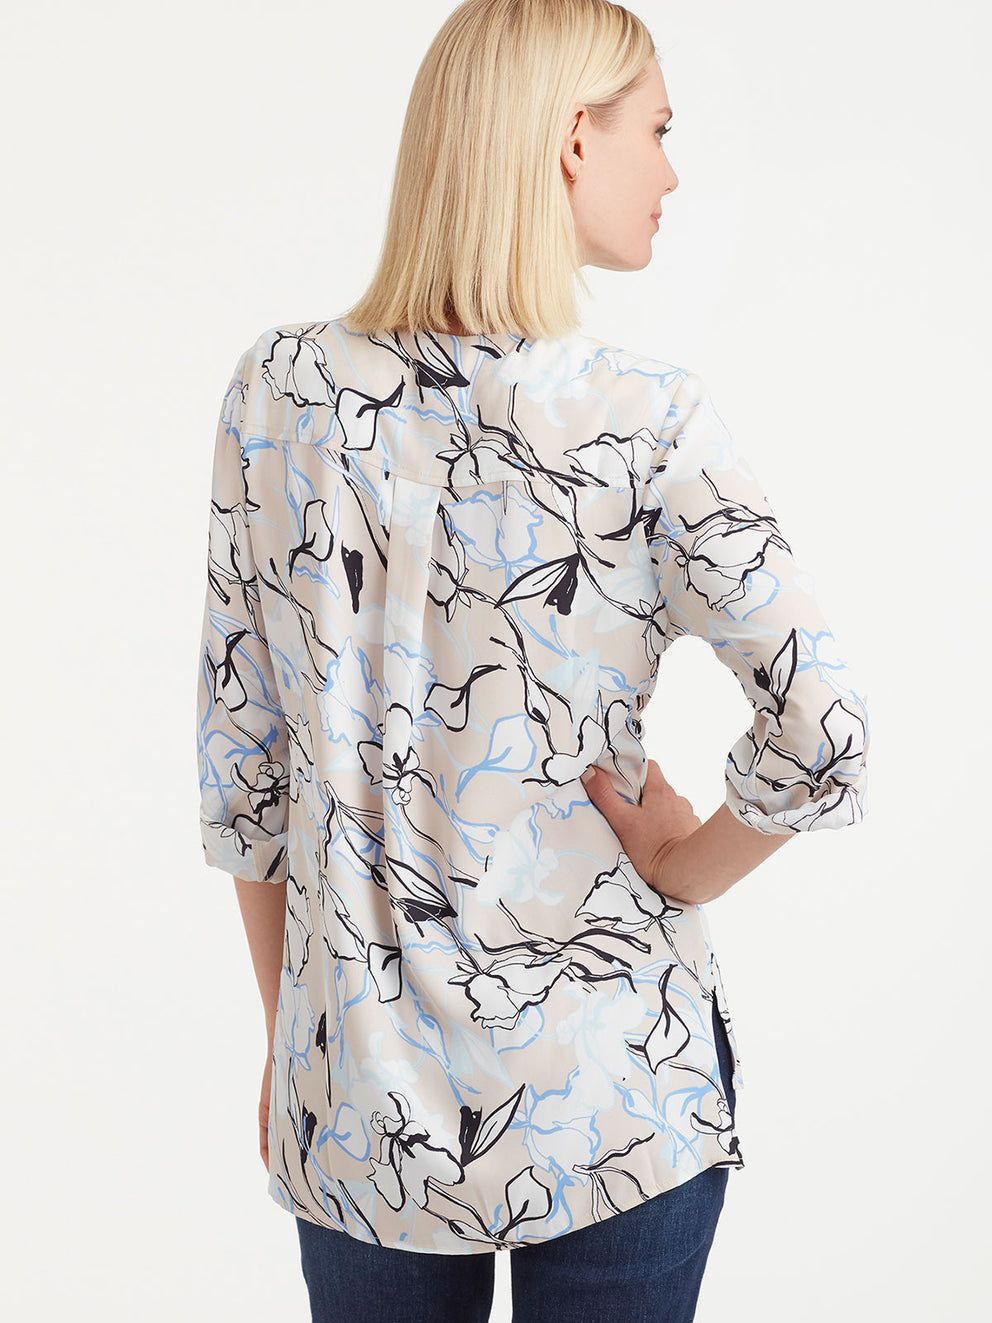 The Jones New York Utility Top in color Pebble Floral - Image Position 3